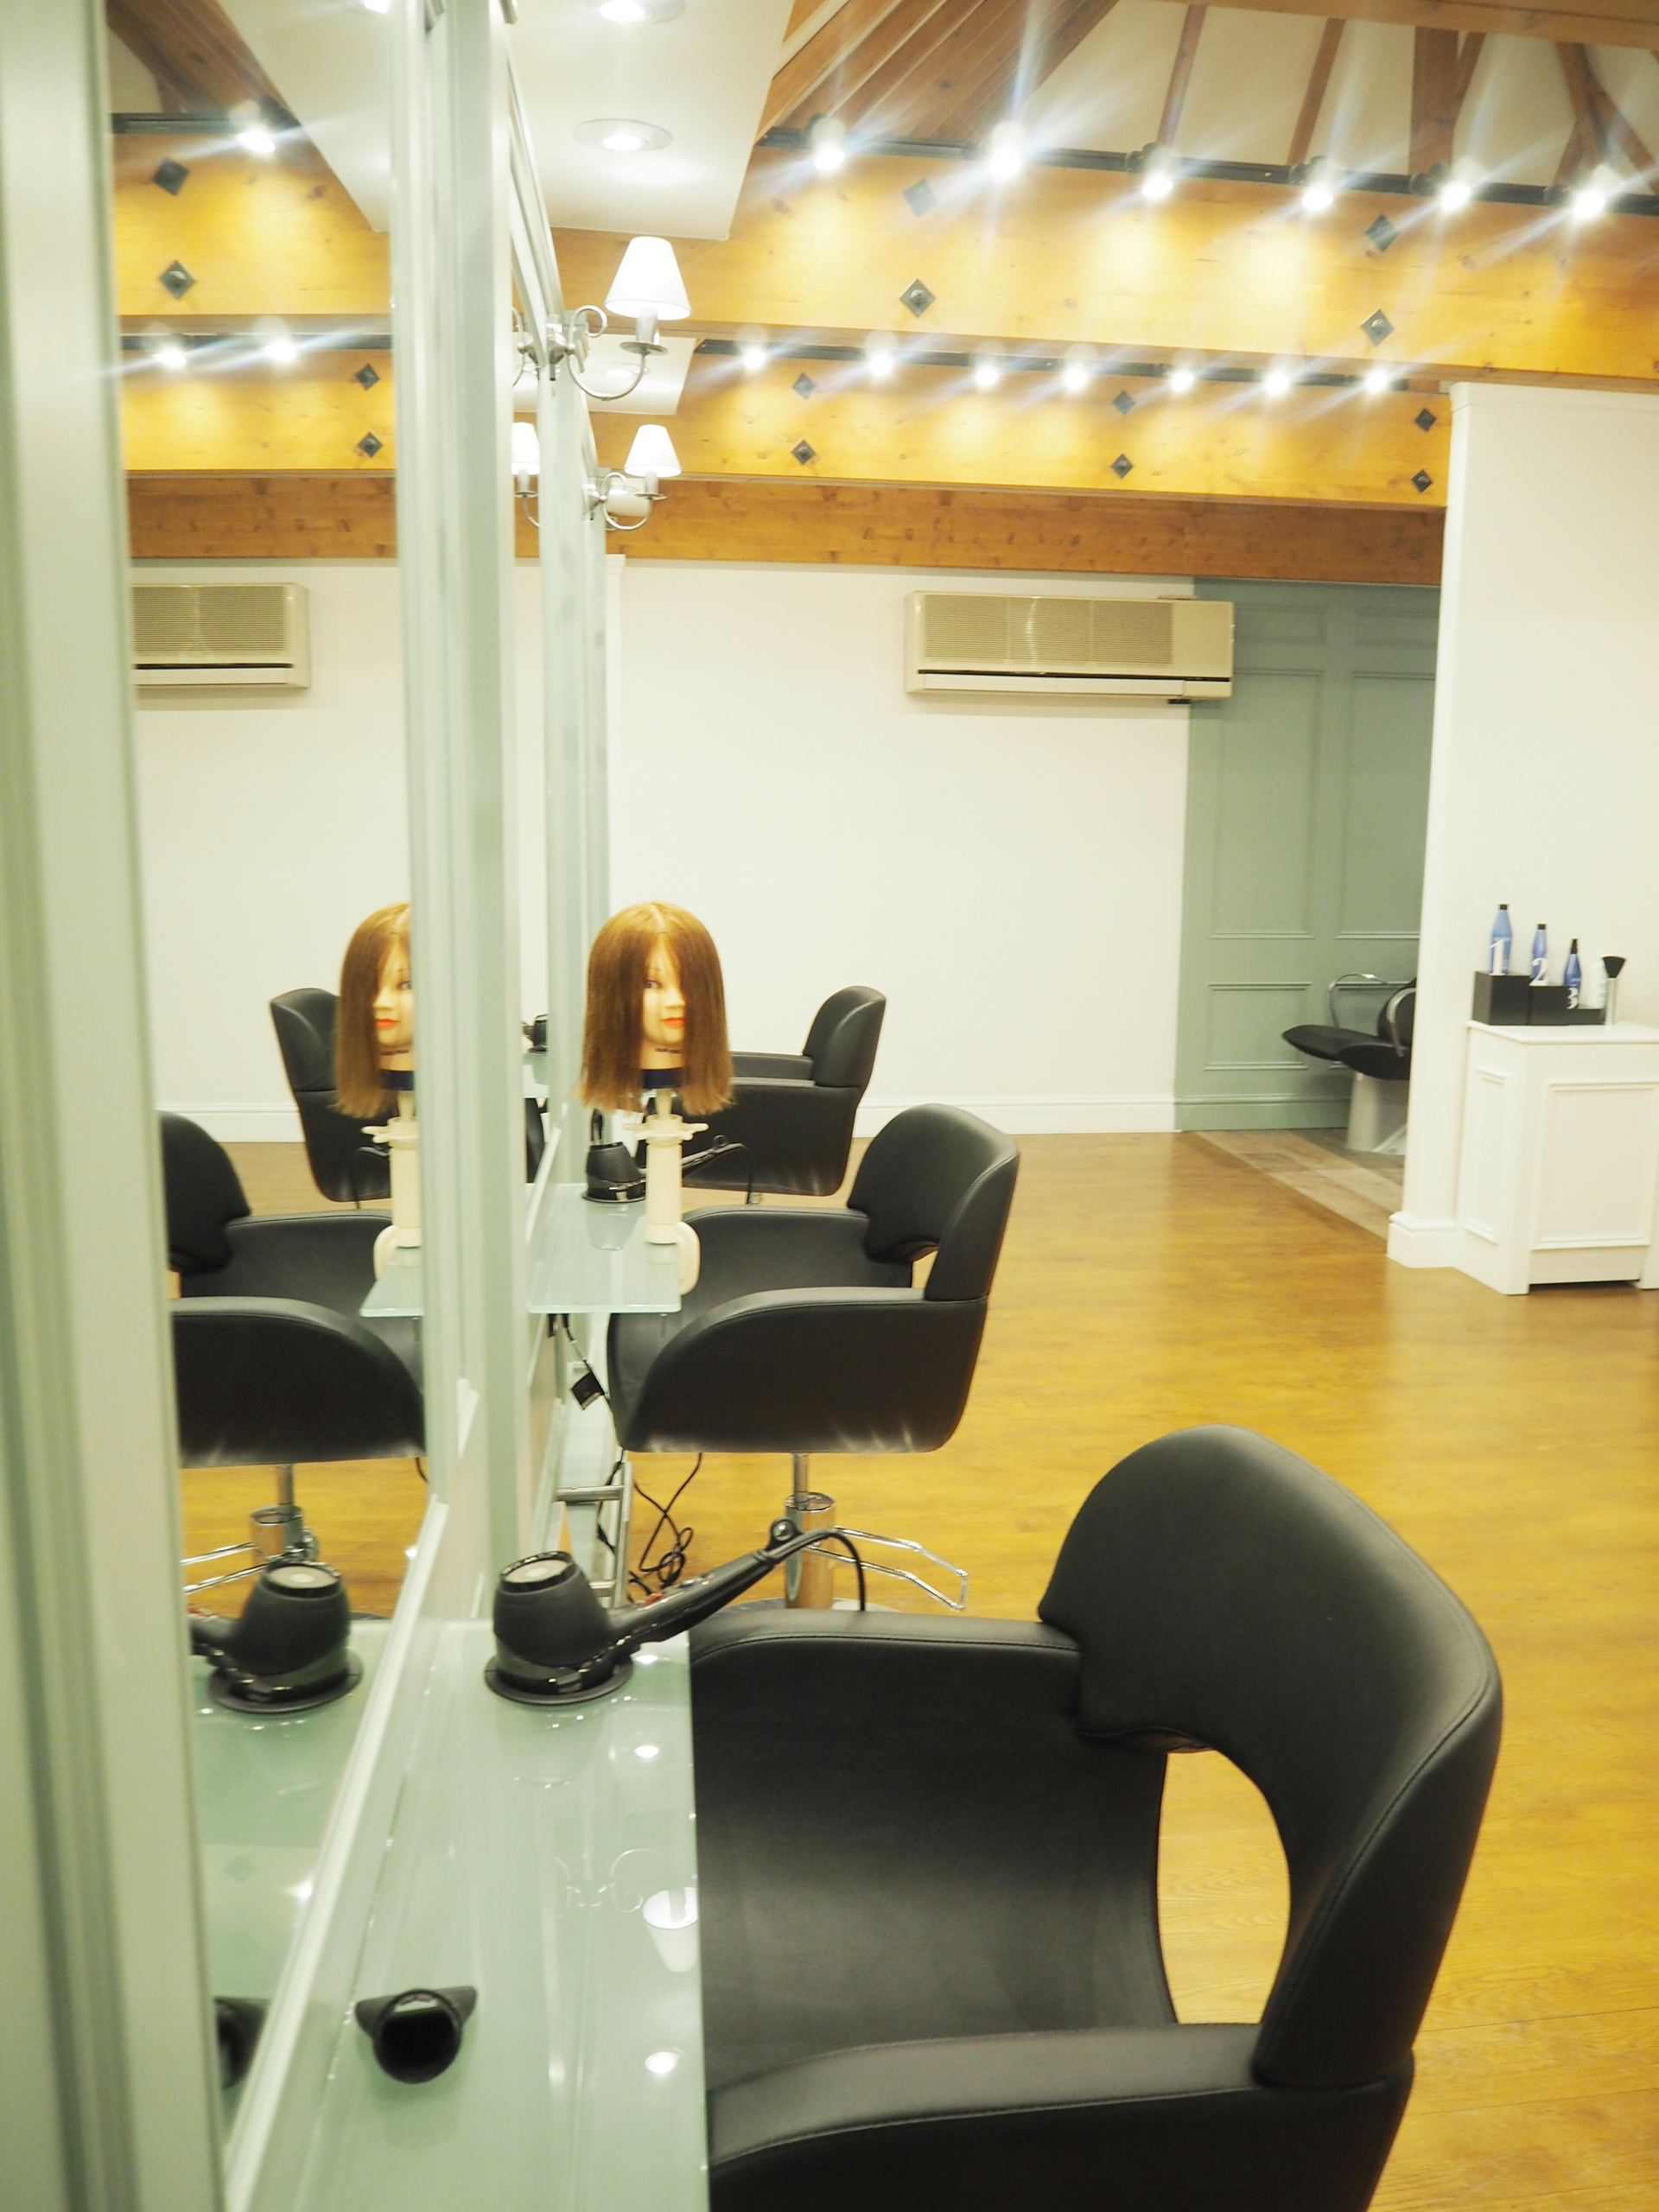 RUSH SALON CHELMSFORD